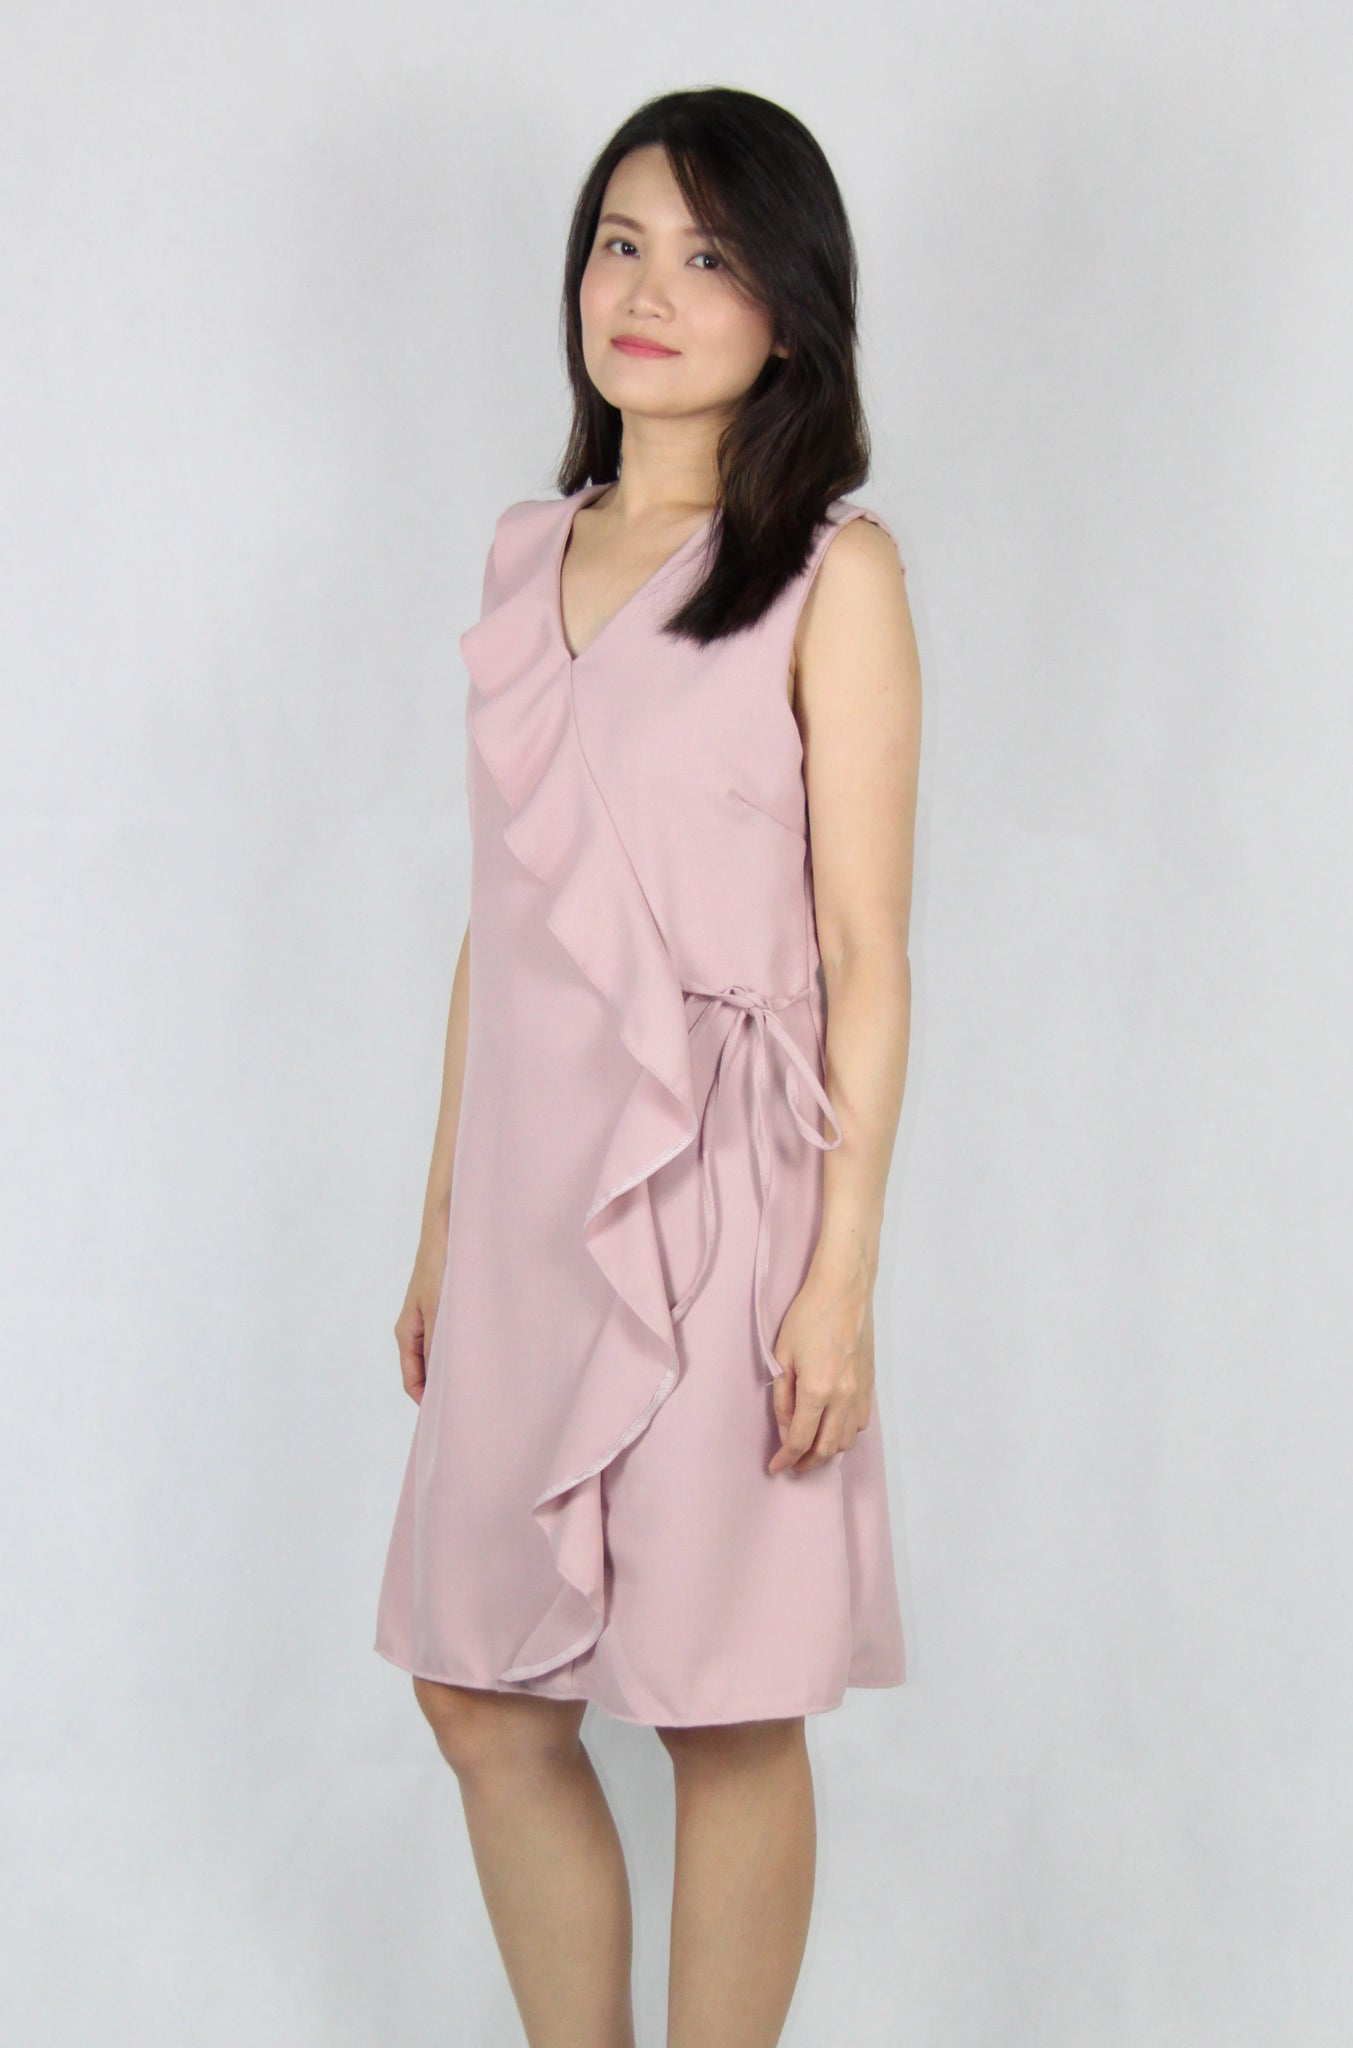 Sleeveless Ruffles V Neck Shift Dress in Pink